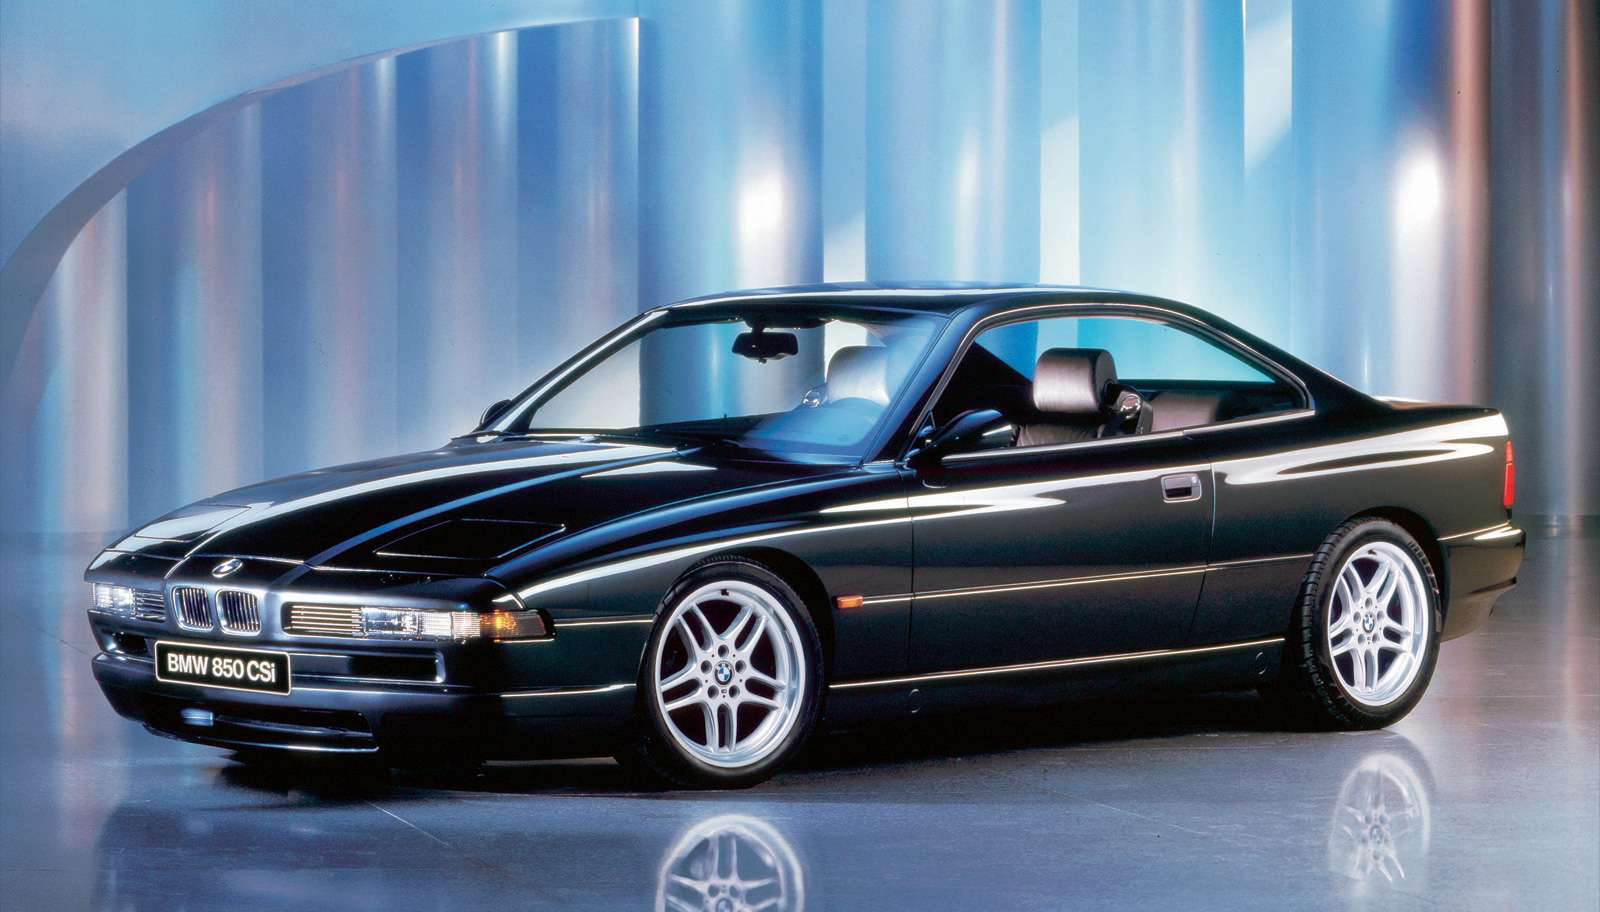 bmw_850_csi_by_thecarloos